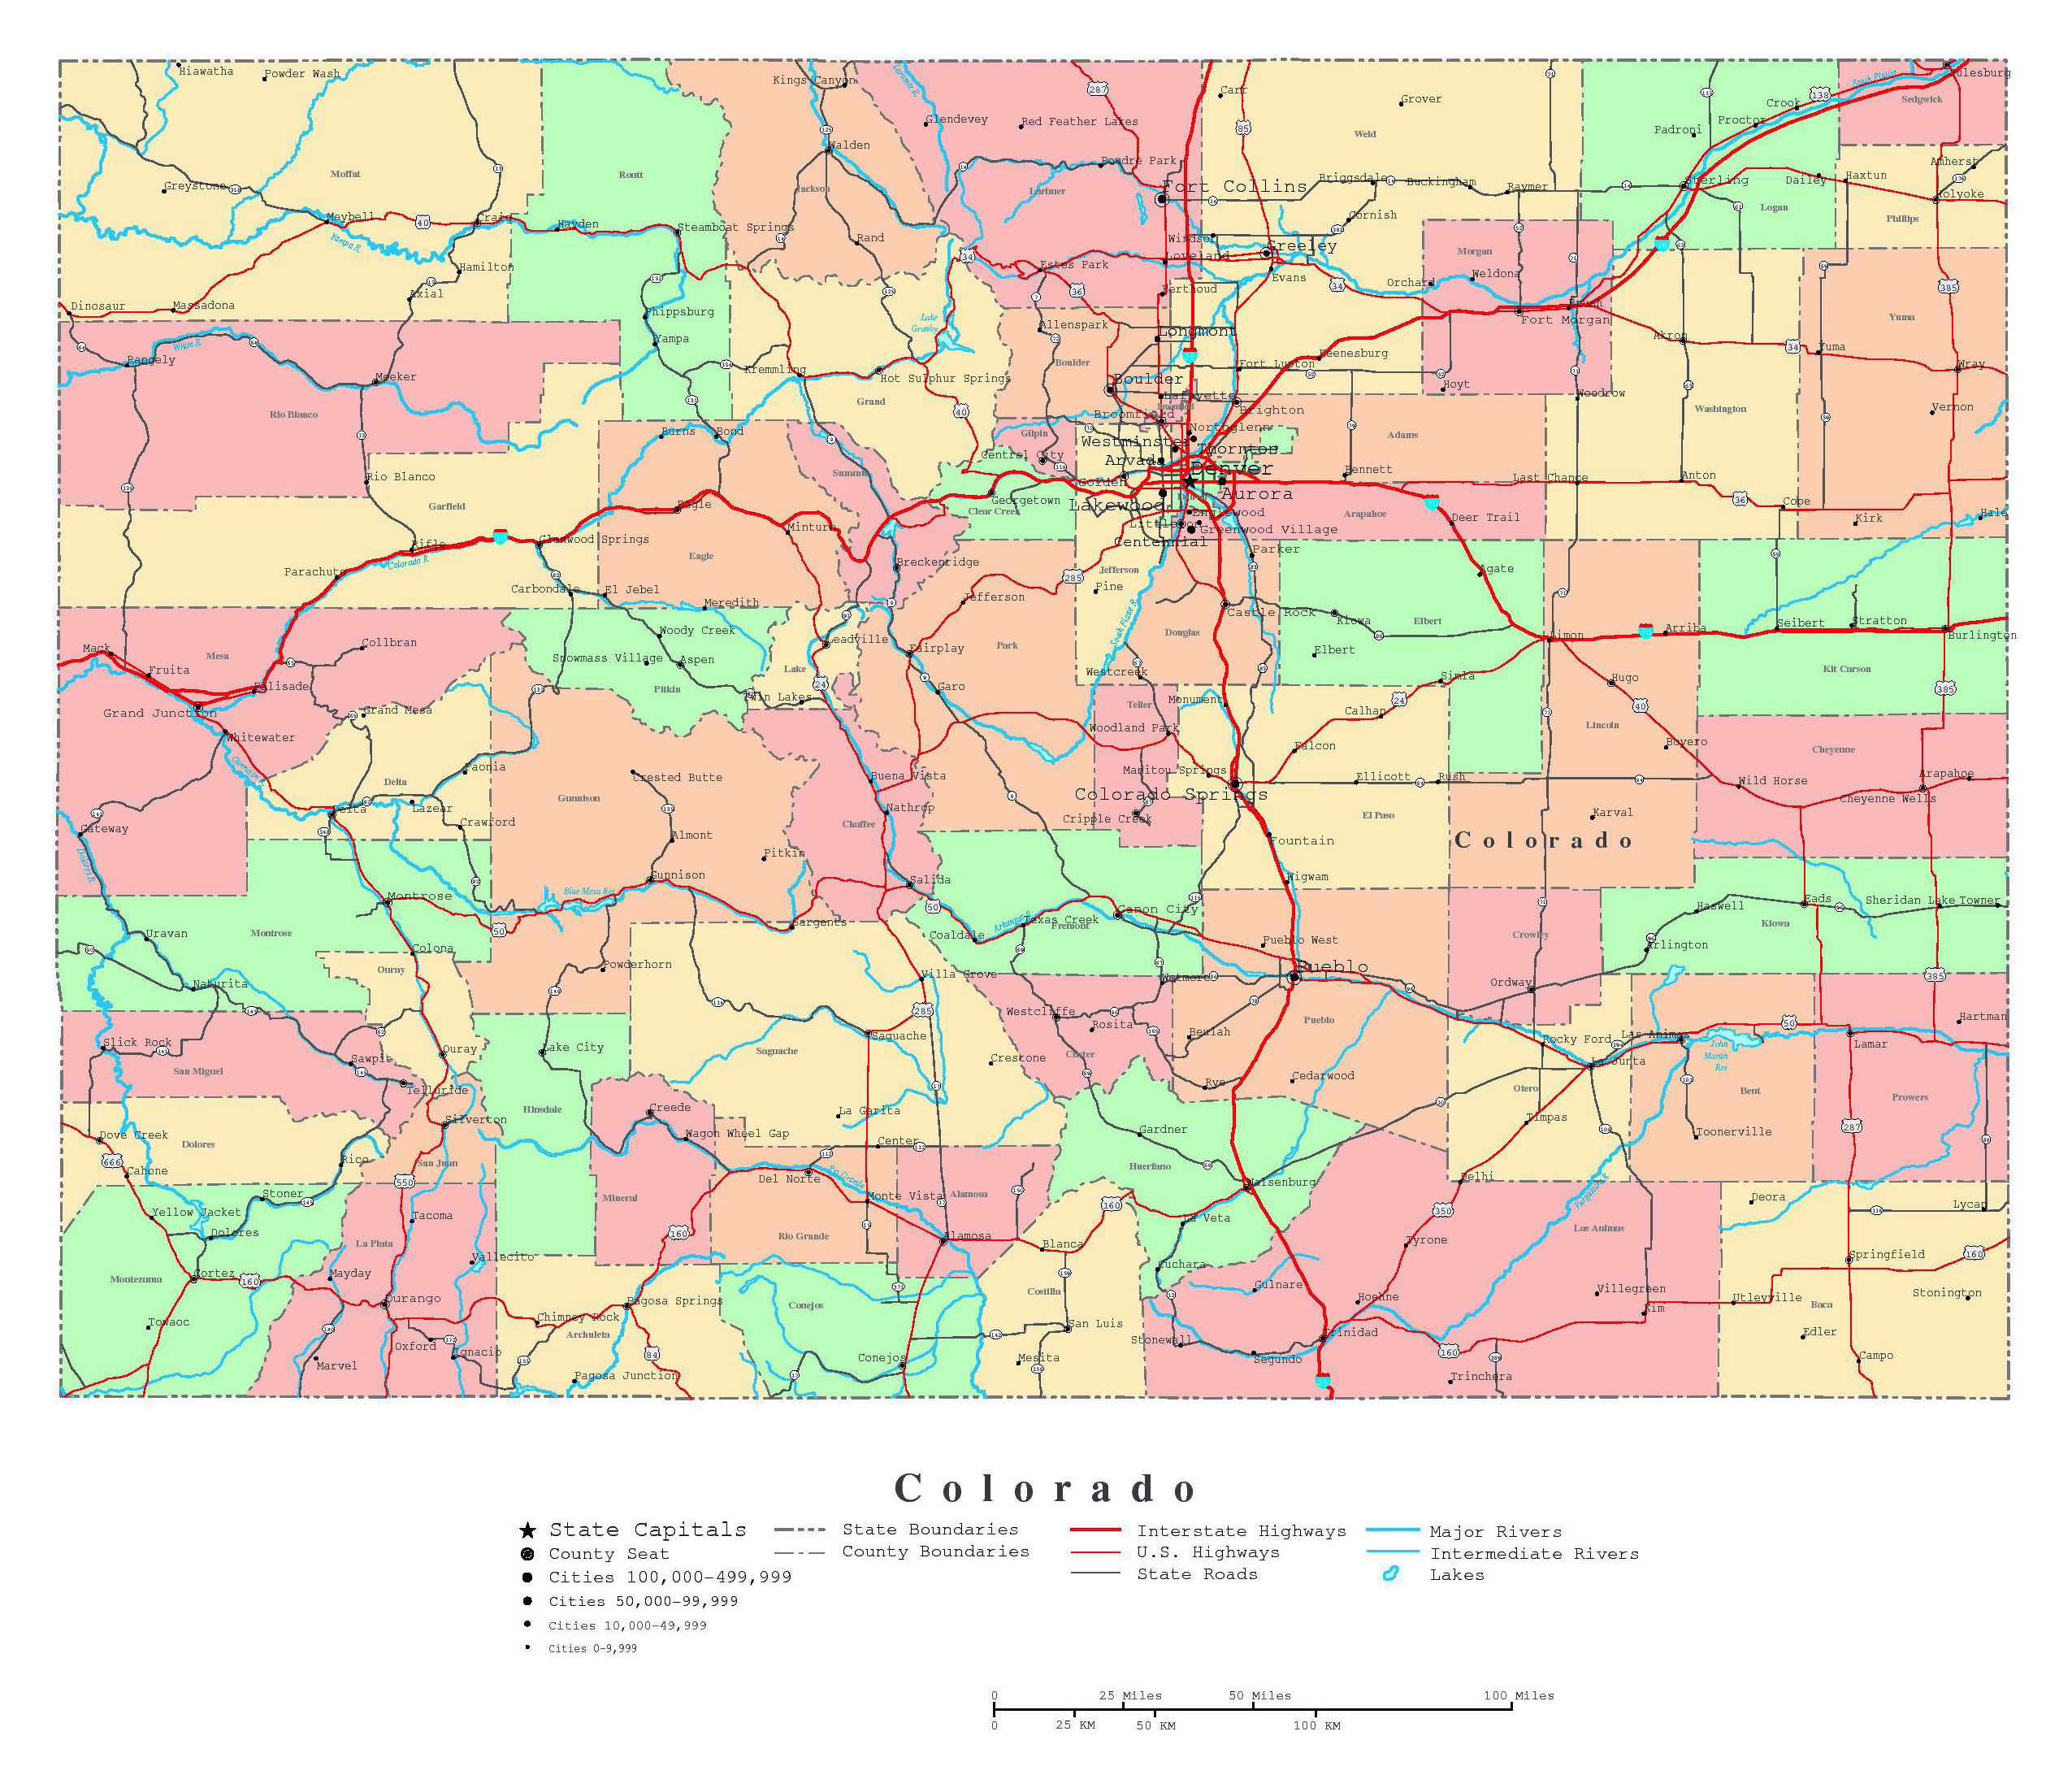 Large Detailed Administrative Map Of Colorado State With Roads - Usa map with cities and states detailed